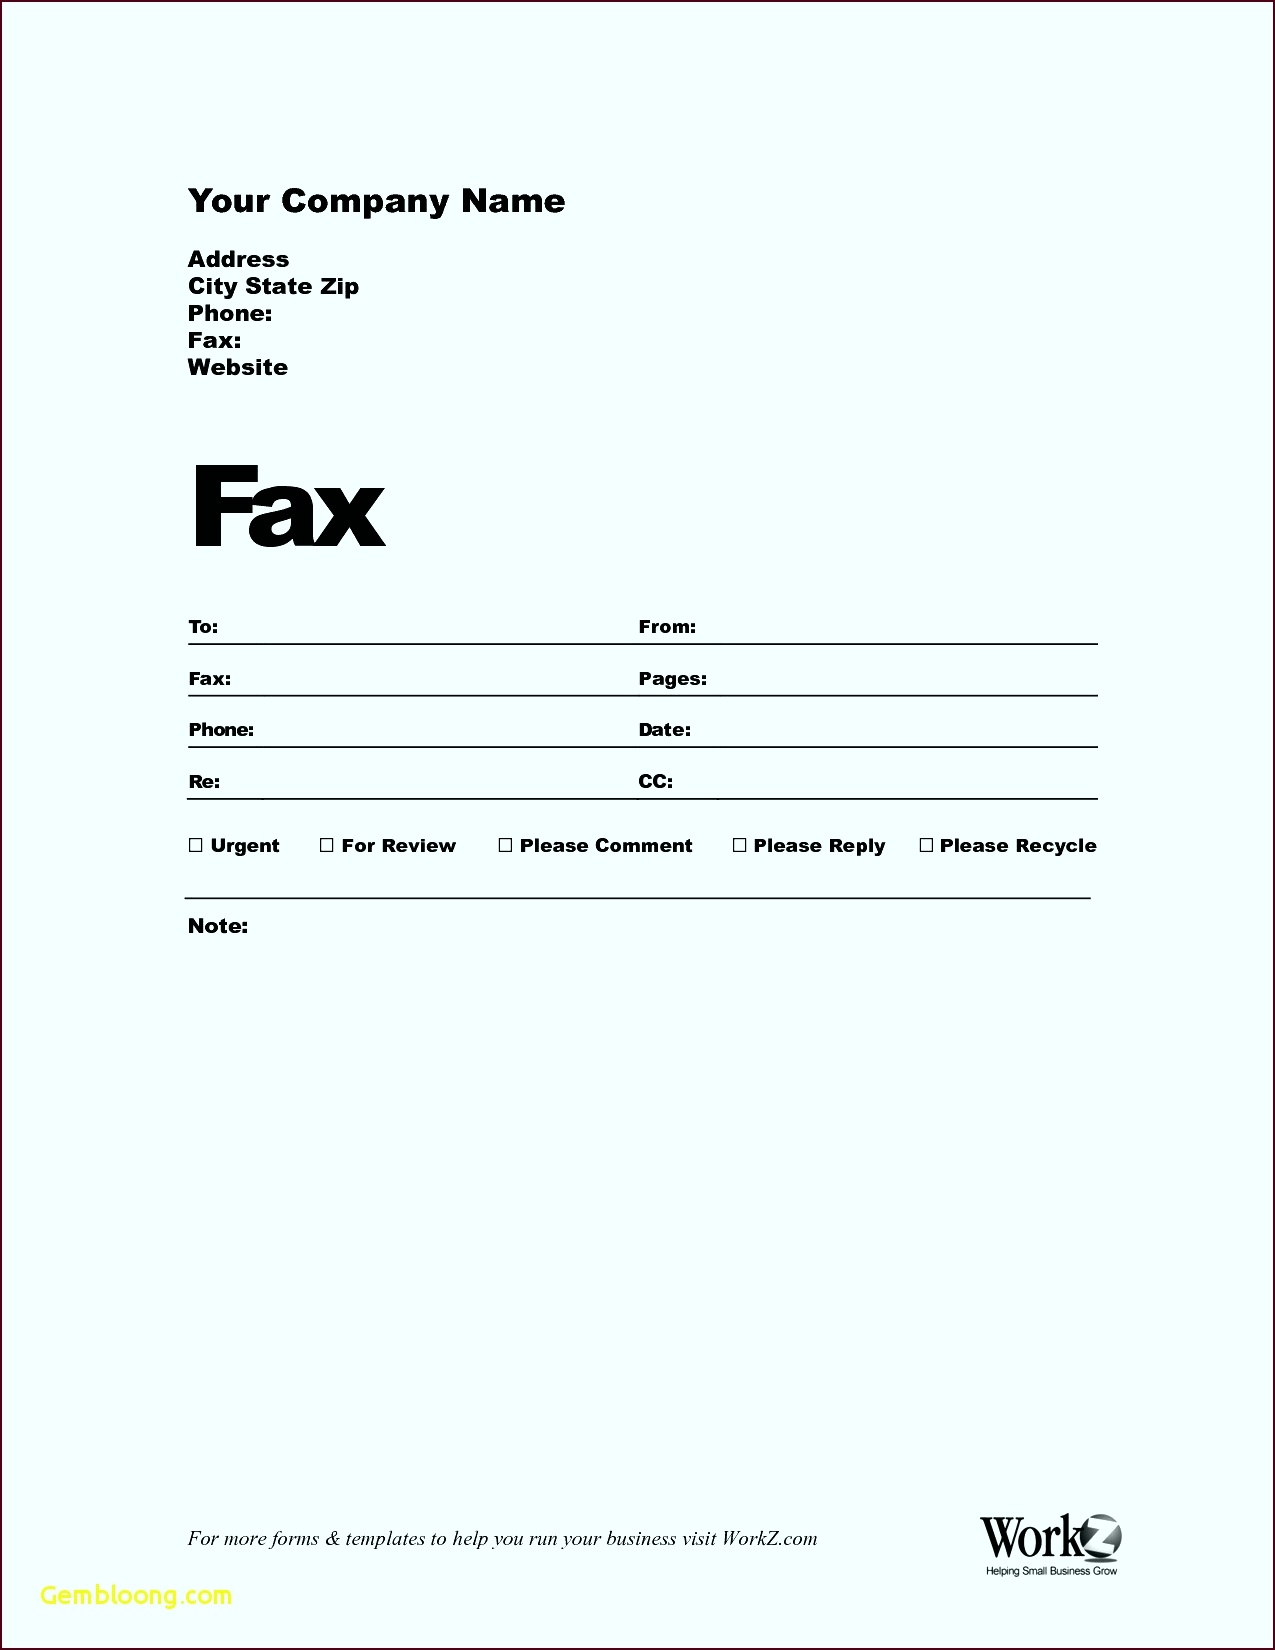 ficial Resume Templates Download now Copy and Paste Resume Templates Unique Od Specialist Cover Letter utree